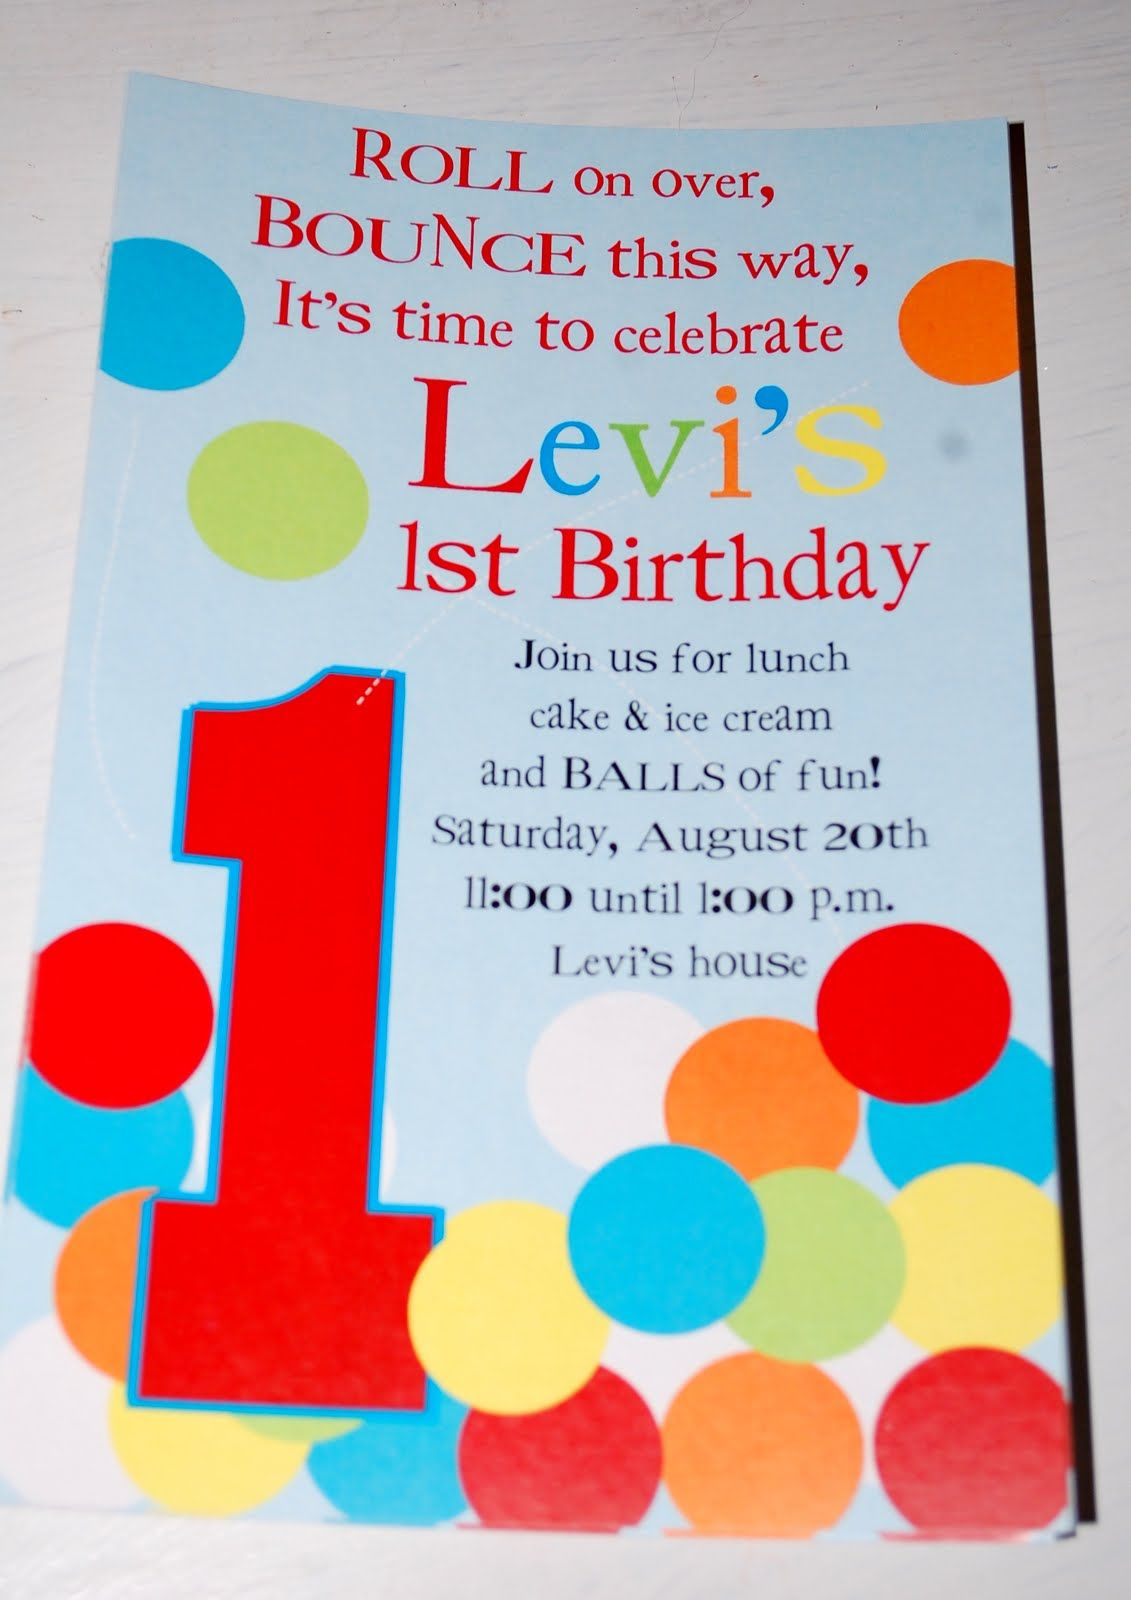 wording ideas forst birthday party invitation%0A Baby Face Design  Bouncey Ball birthday invitations  love the wording